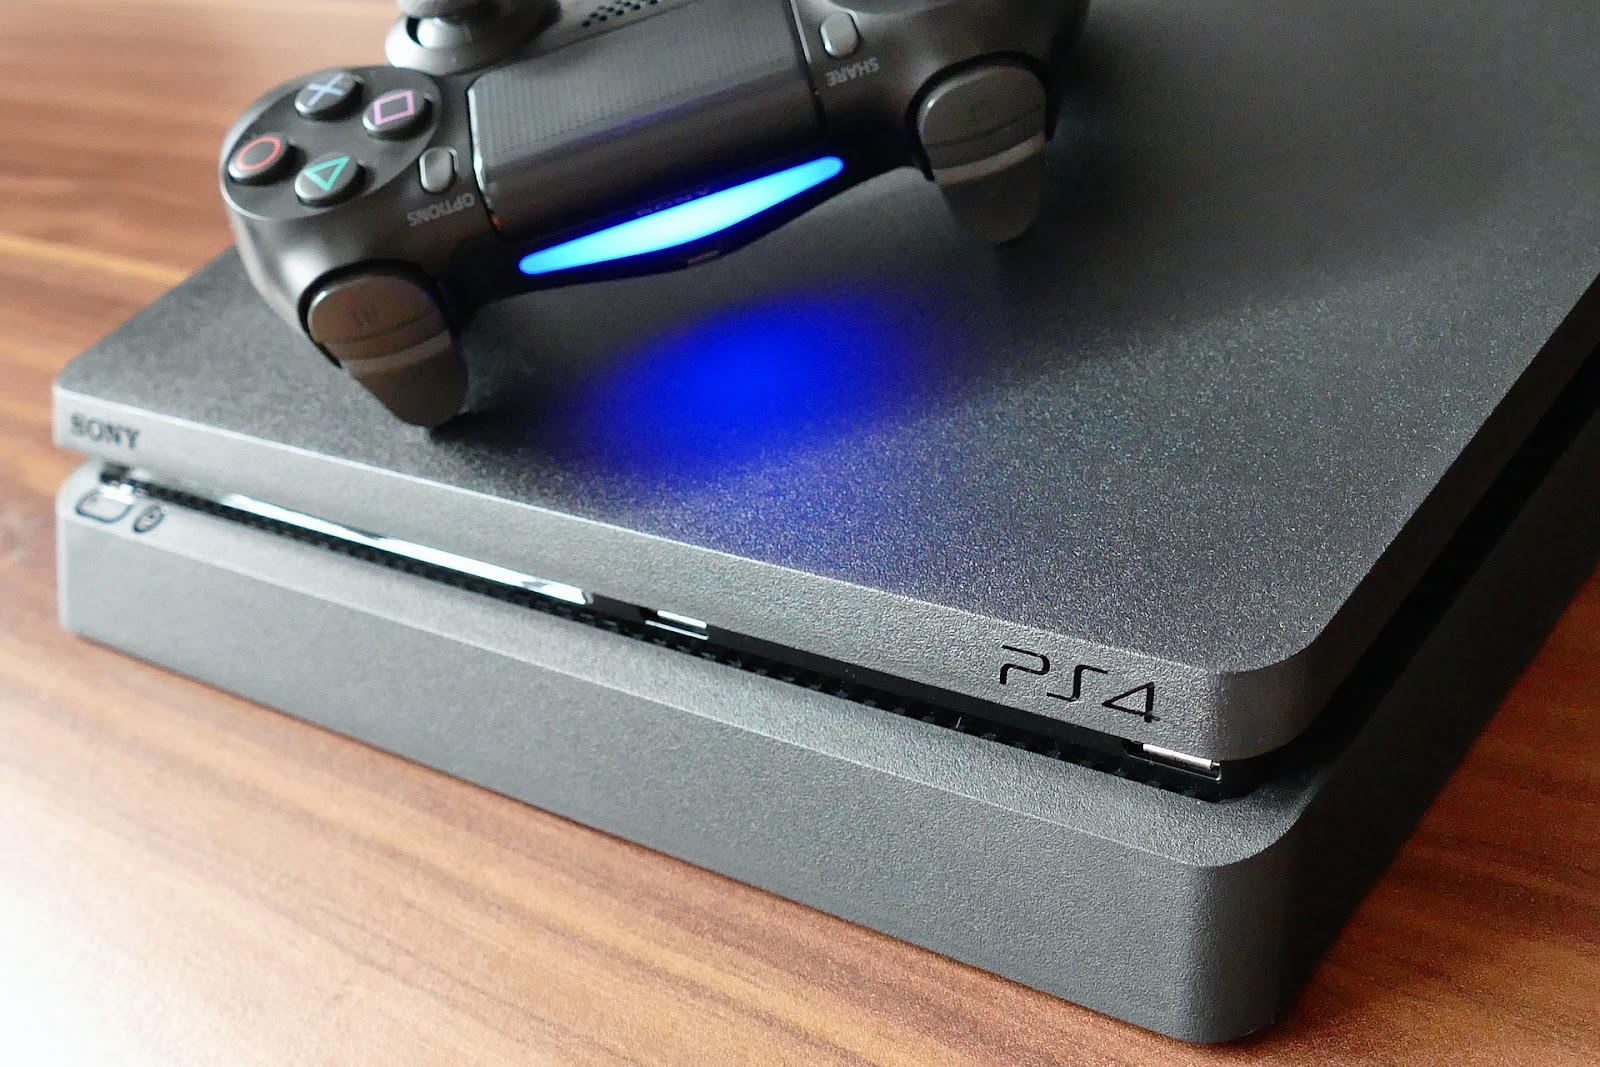 PS4 console and a DualShock 4 Wireless Controller with a glowing blue light bar